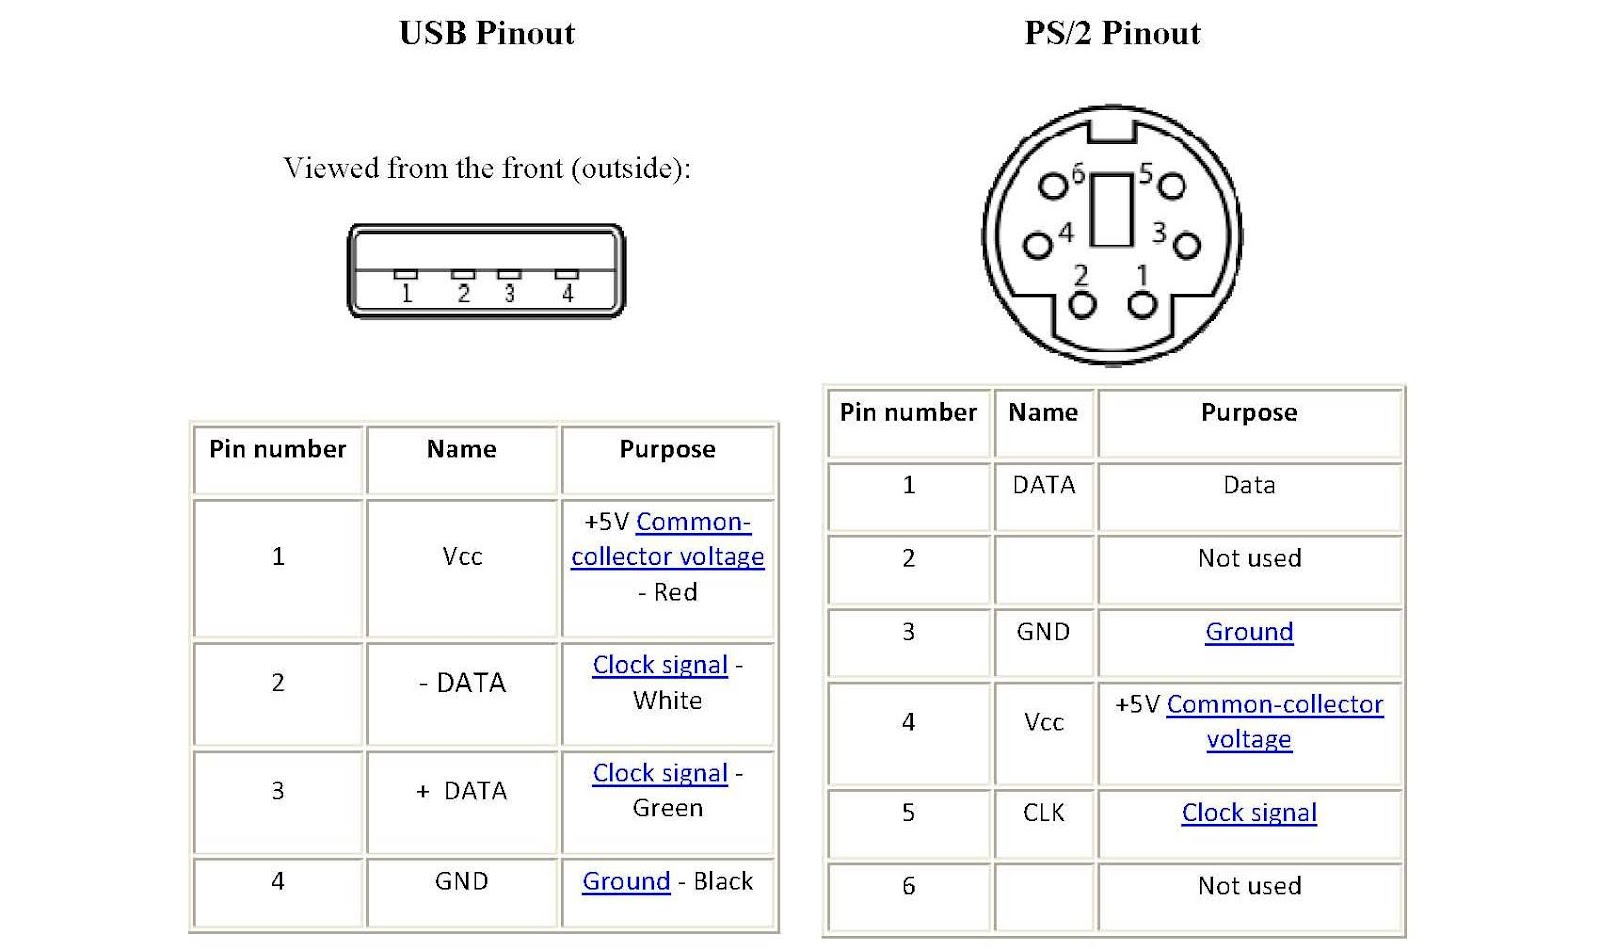 ps2 usb wiring diagram ps2 wiring diagrams online ps2 usb wiring diagram ps2 wiring diagrams